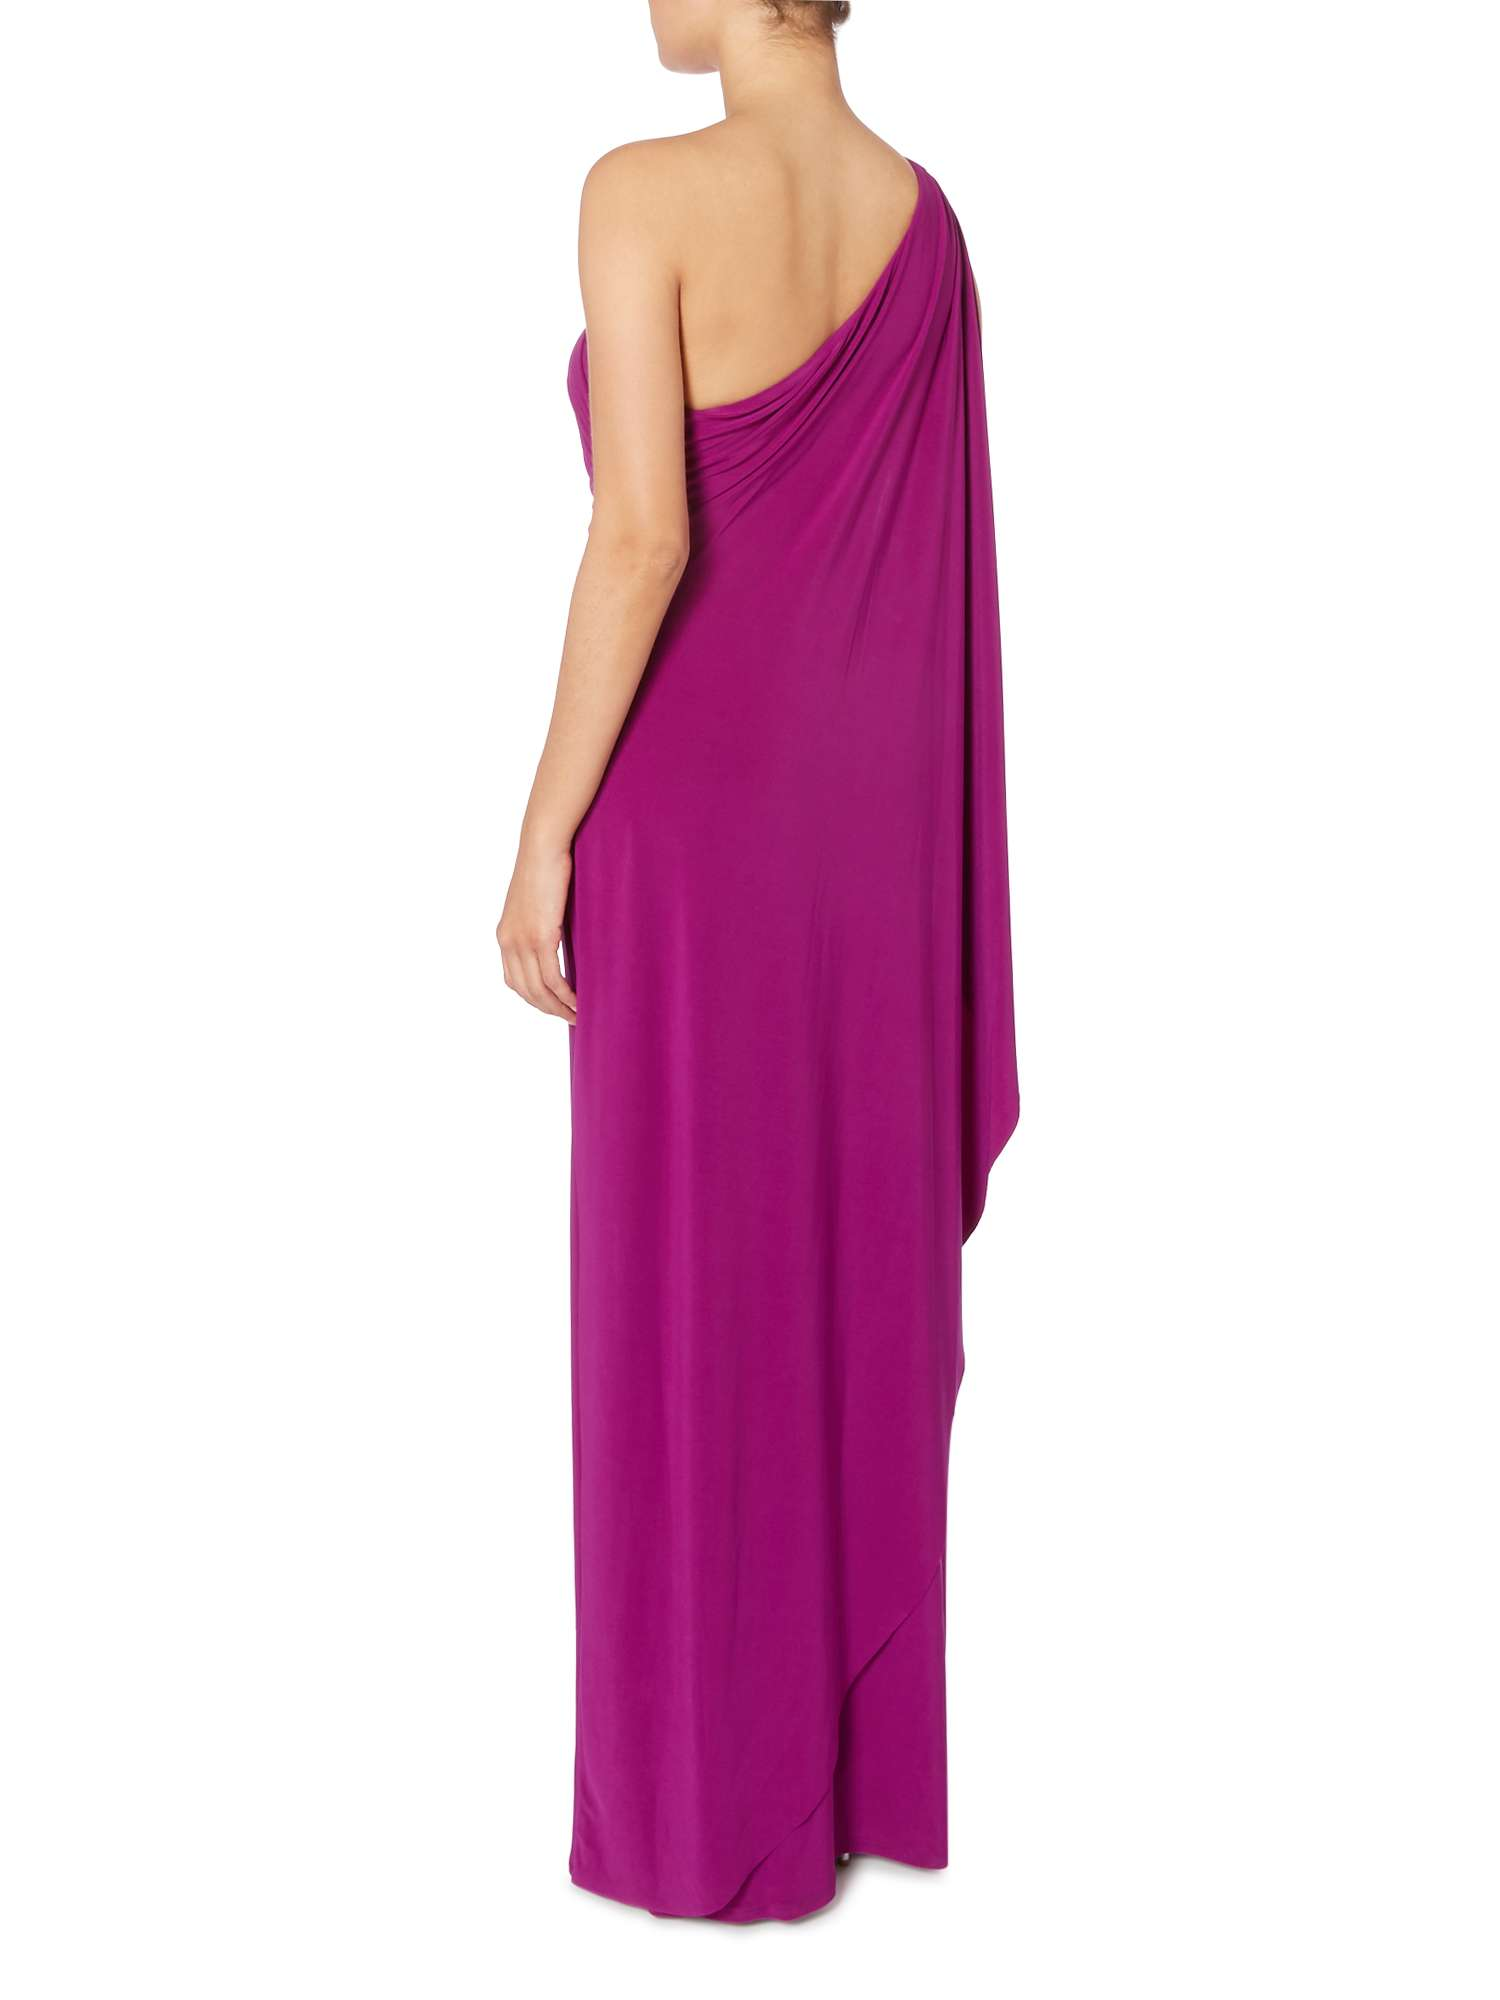 Lauren Dress Shoulder Lauren One Drape Ralph xBqwwO1gvc